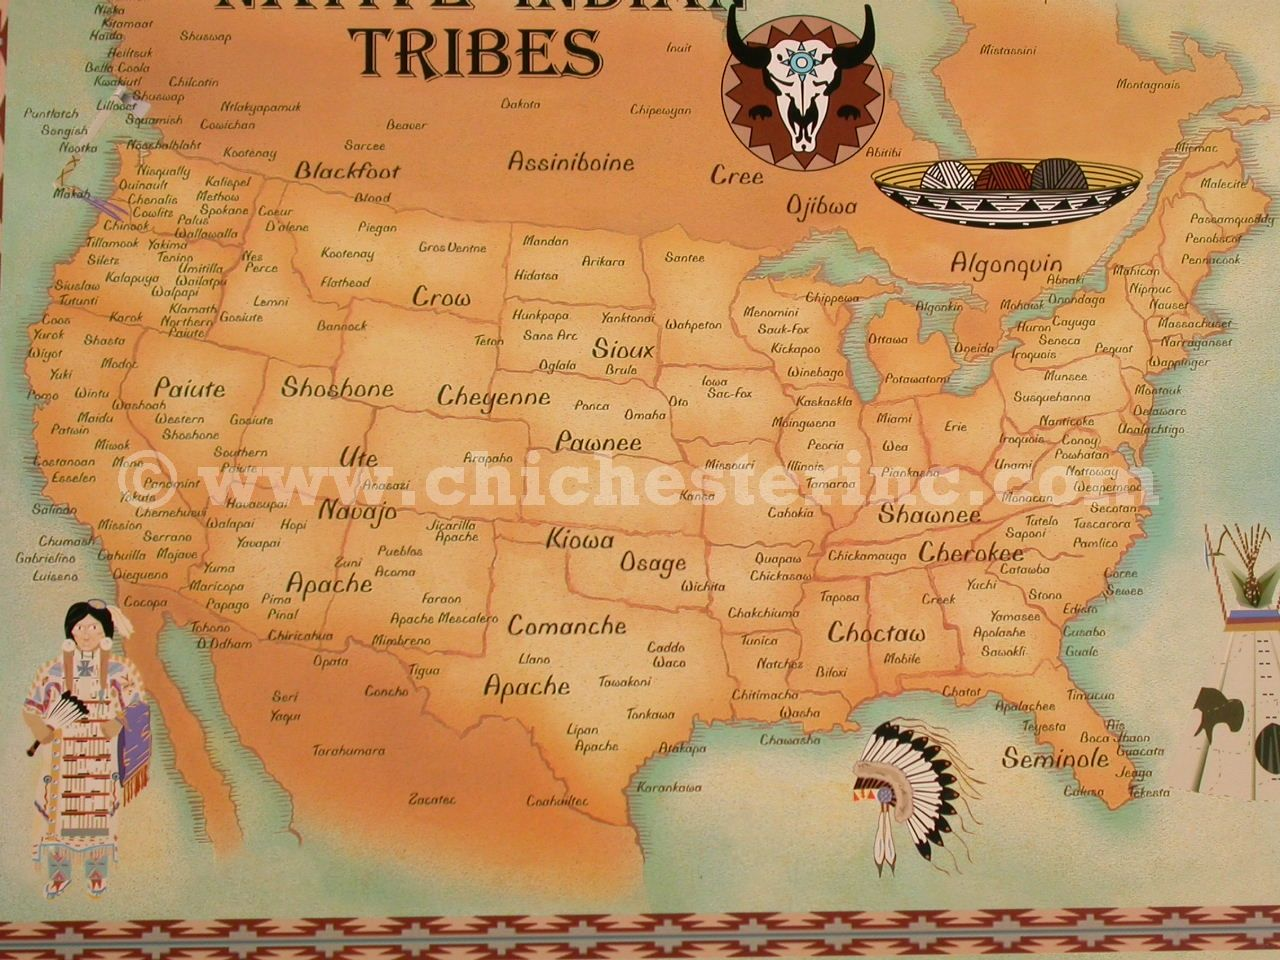 Alphabetic Listing Of Native American Indian Tribes Of South Central And North America With